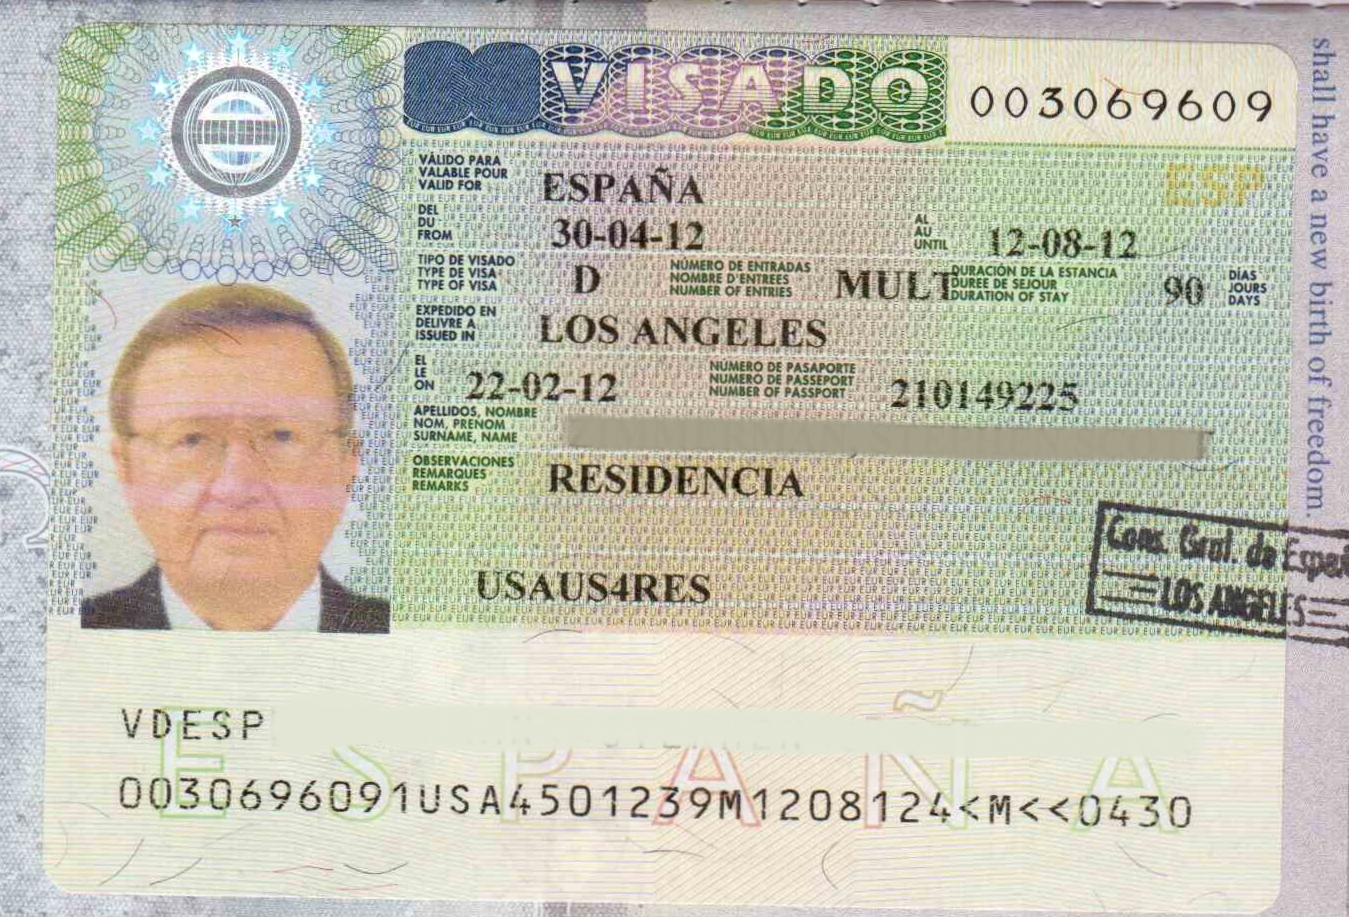 Spain visa application form 20182019 and how to apply online spain visa application form 2017 falaconquin